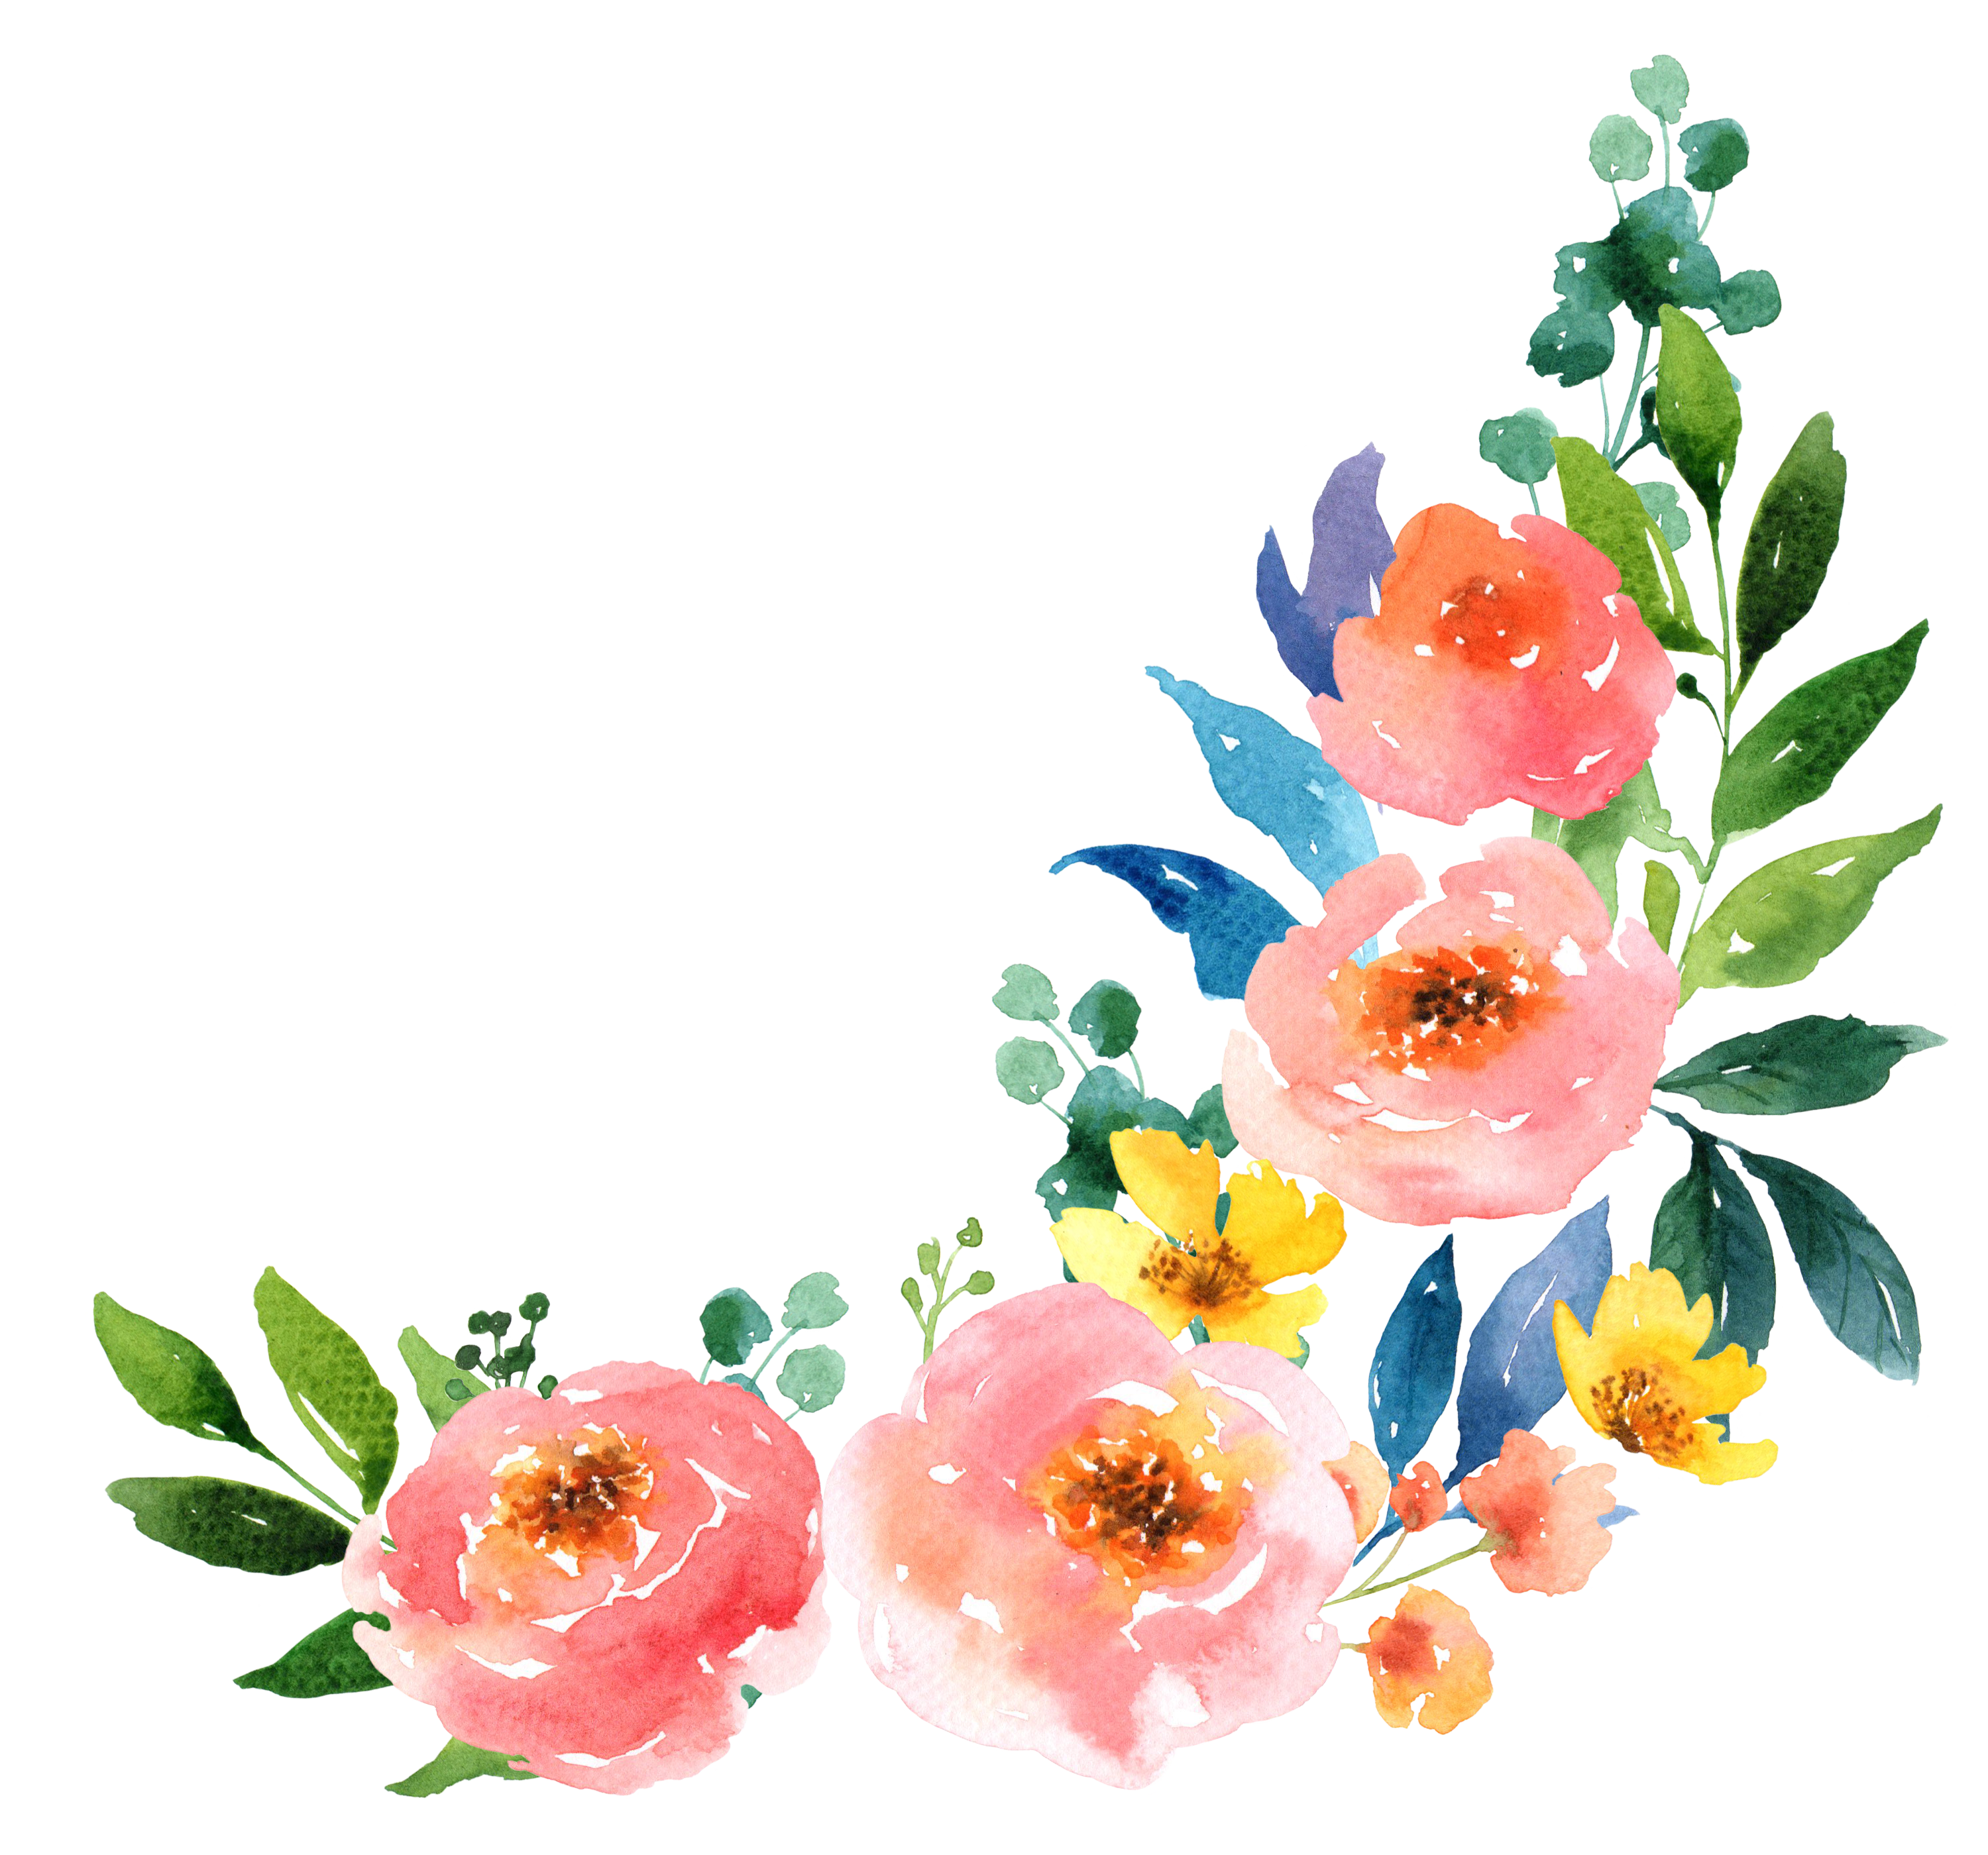 Mango clipart watercolor. Paper watercolour flowers painting